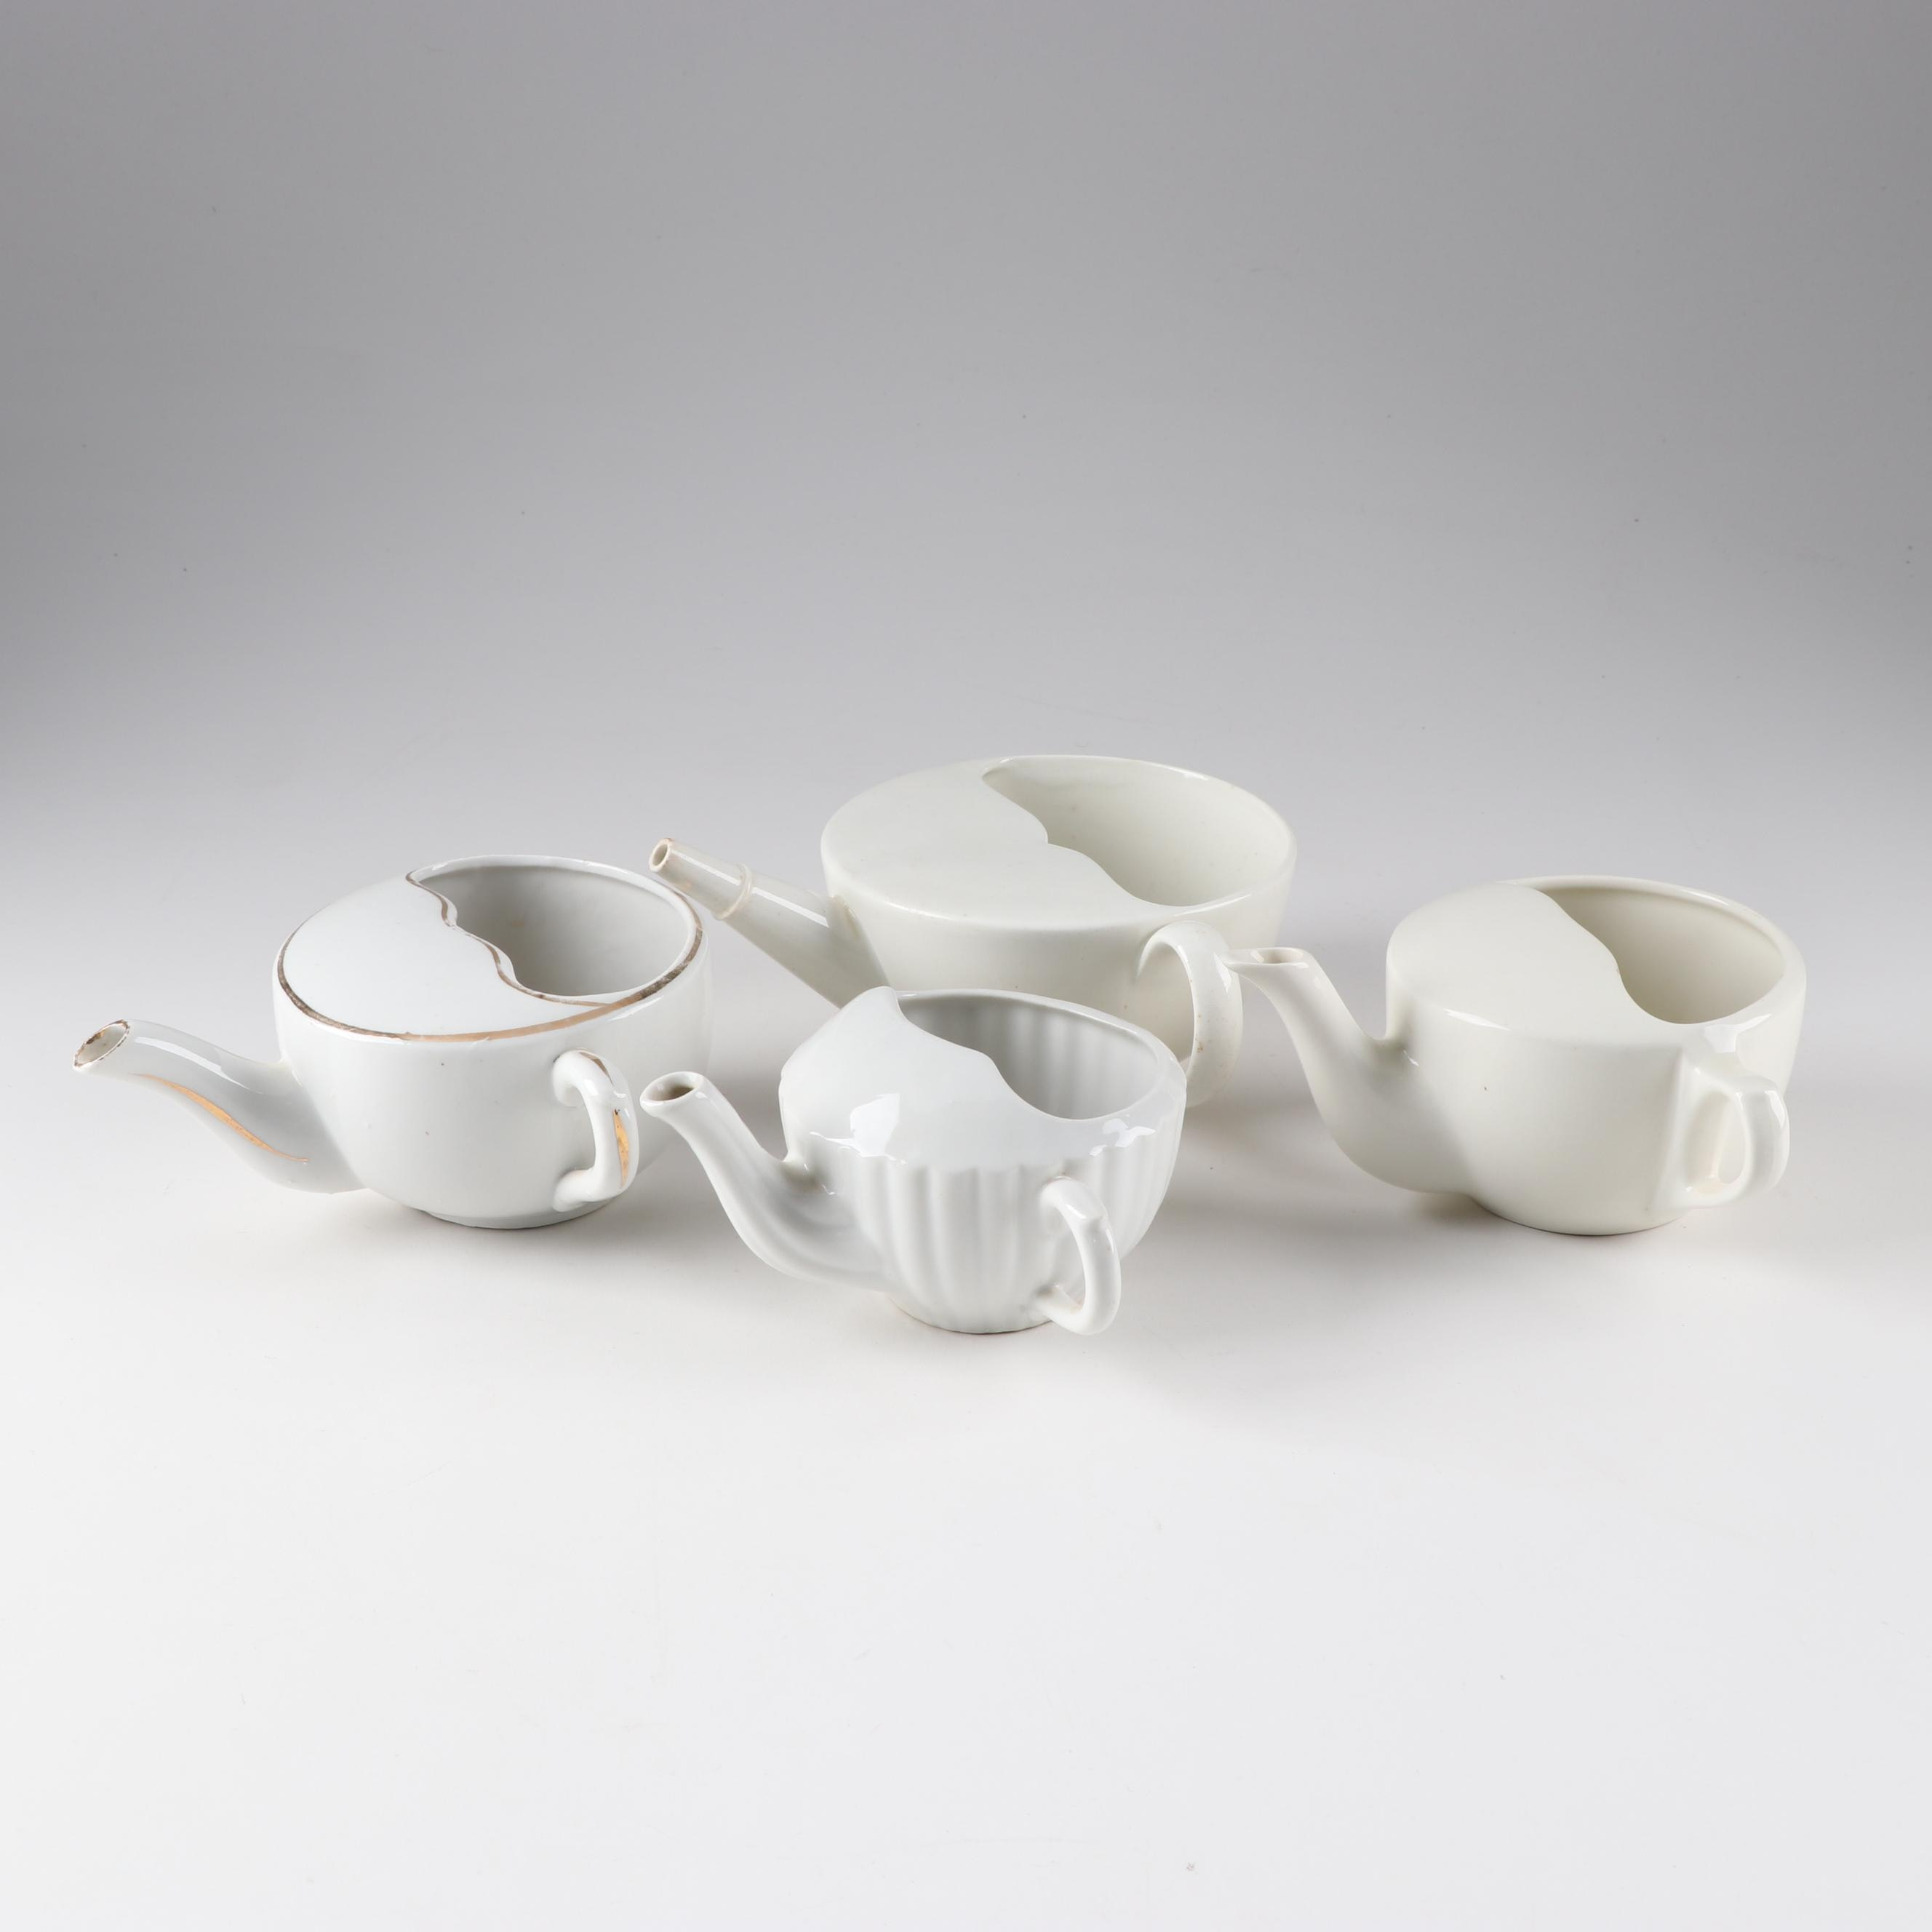 Porcelain Feeding Cups Featuring Royal Winton